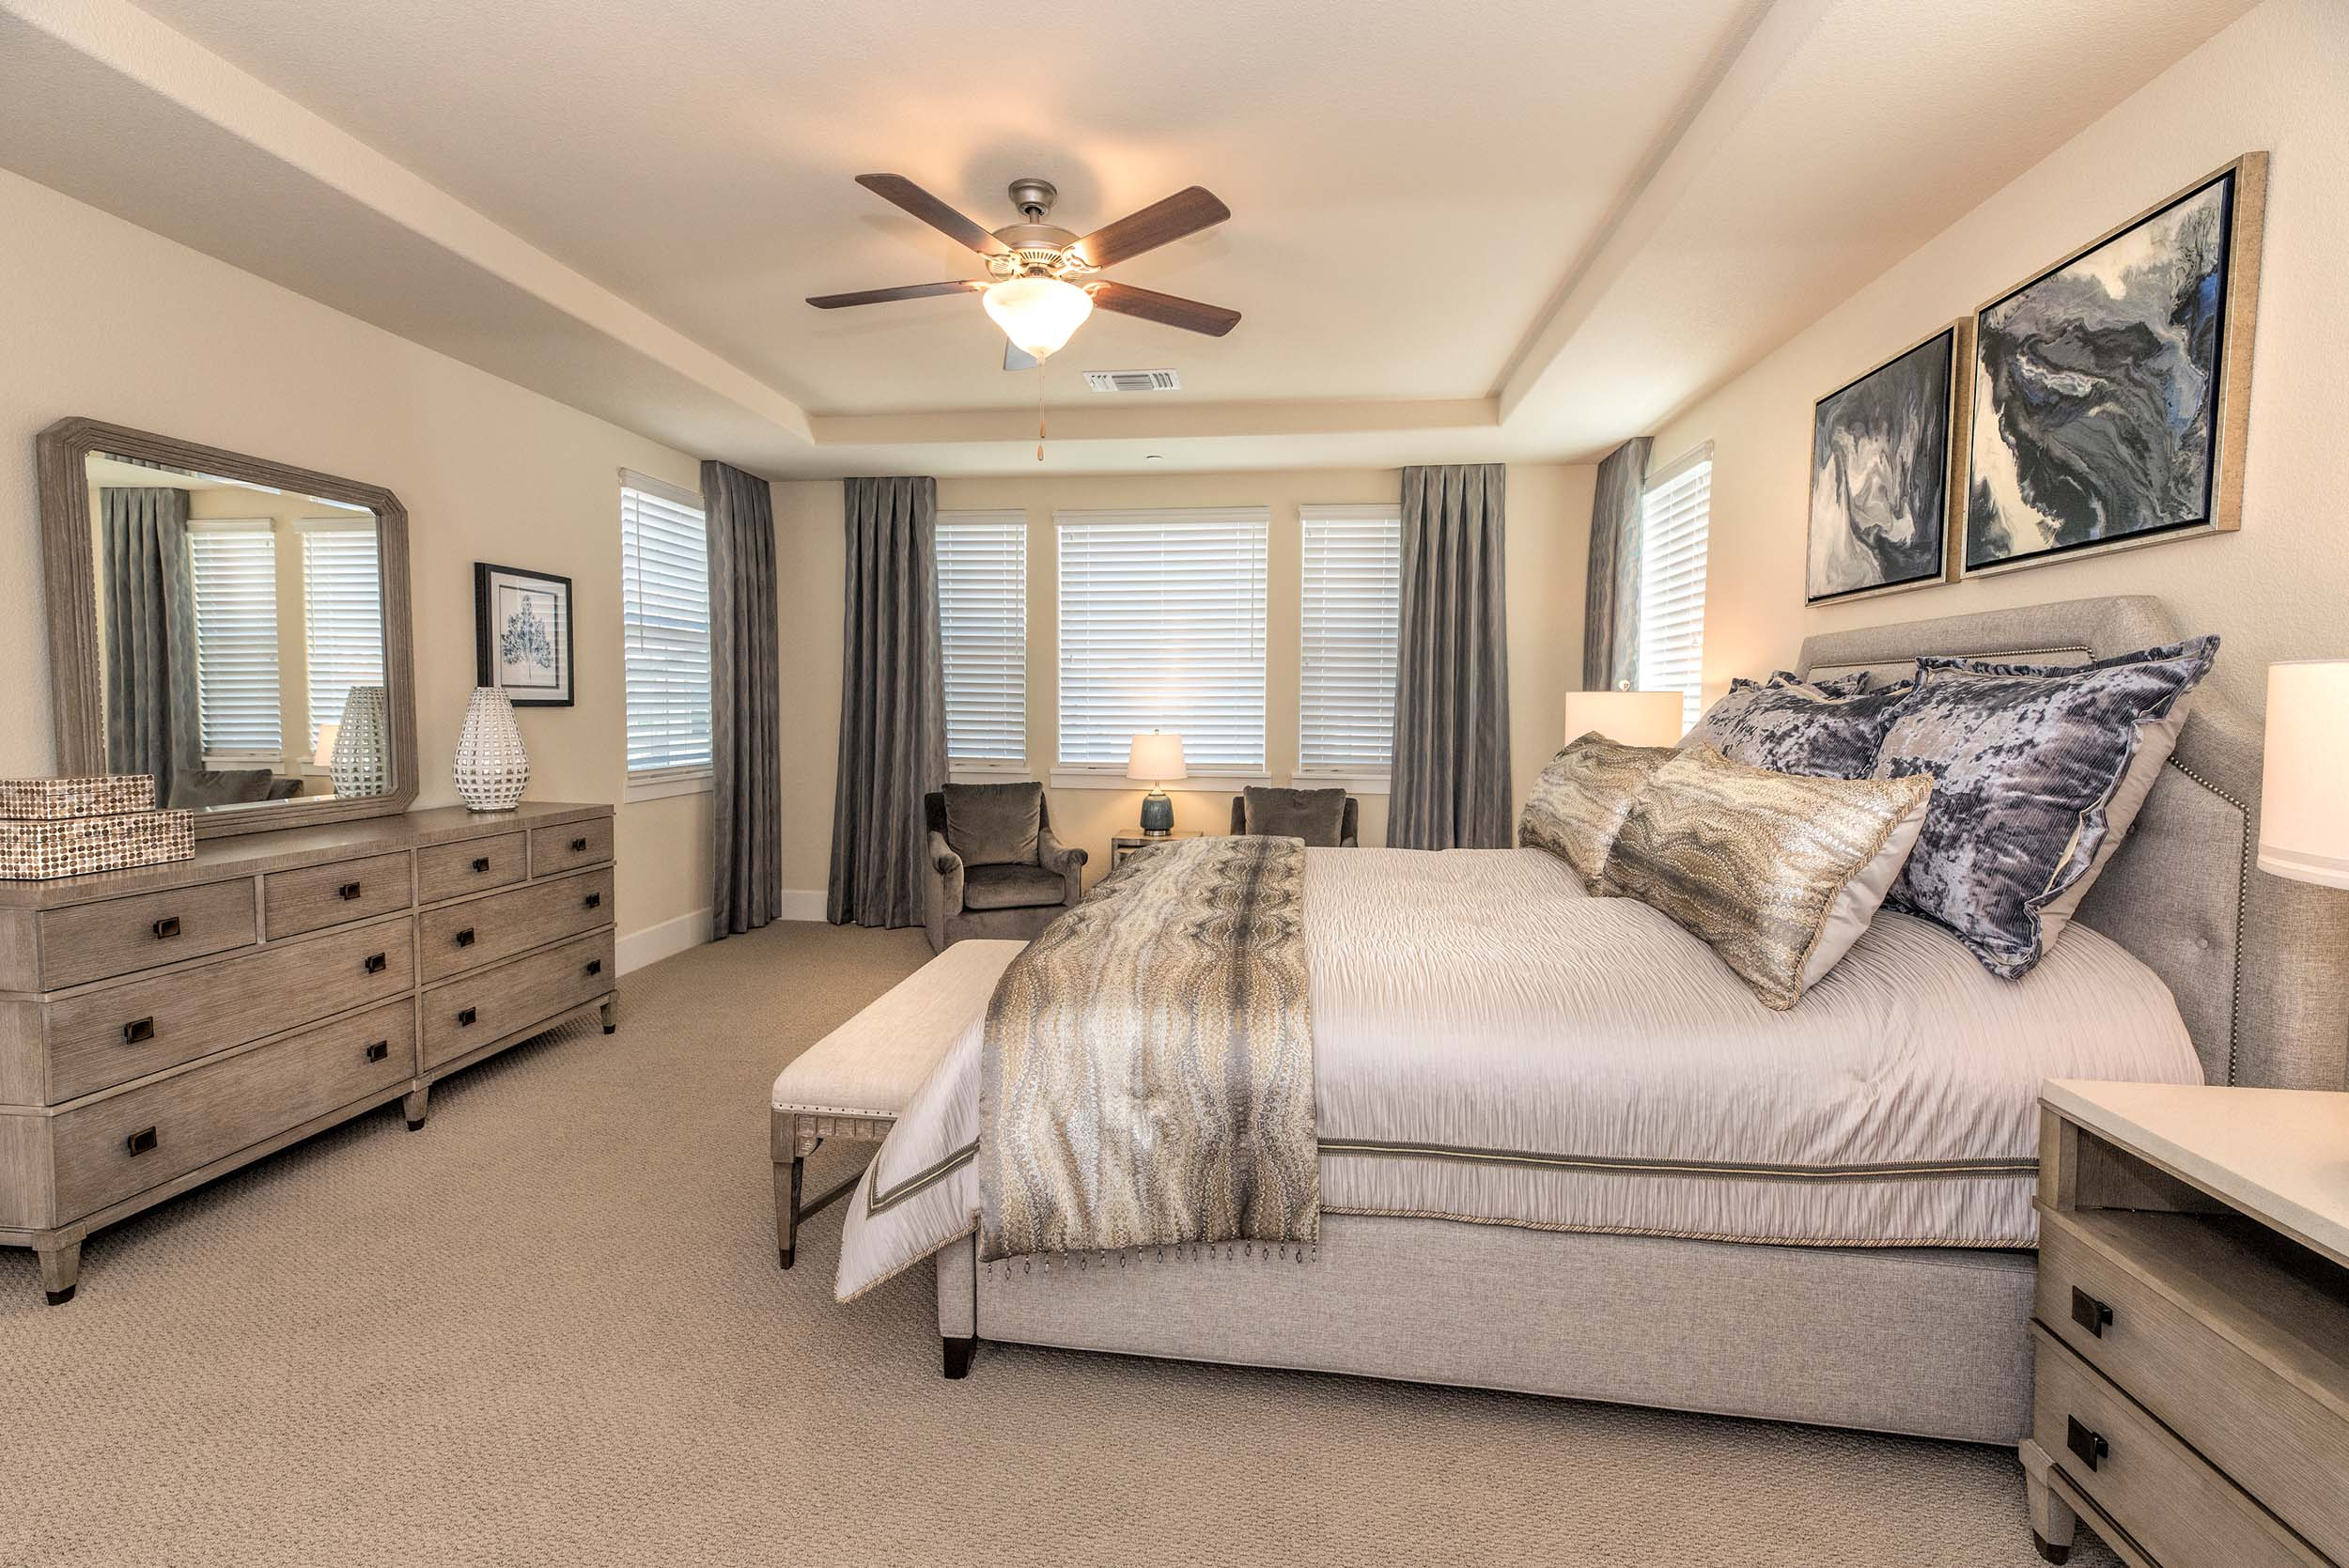 Bedroom with bed, large drawer, mirror and ceiling fan